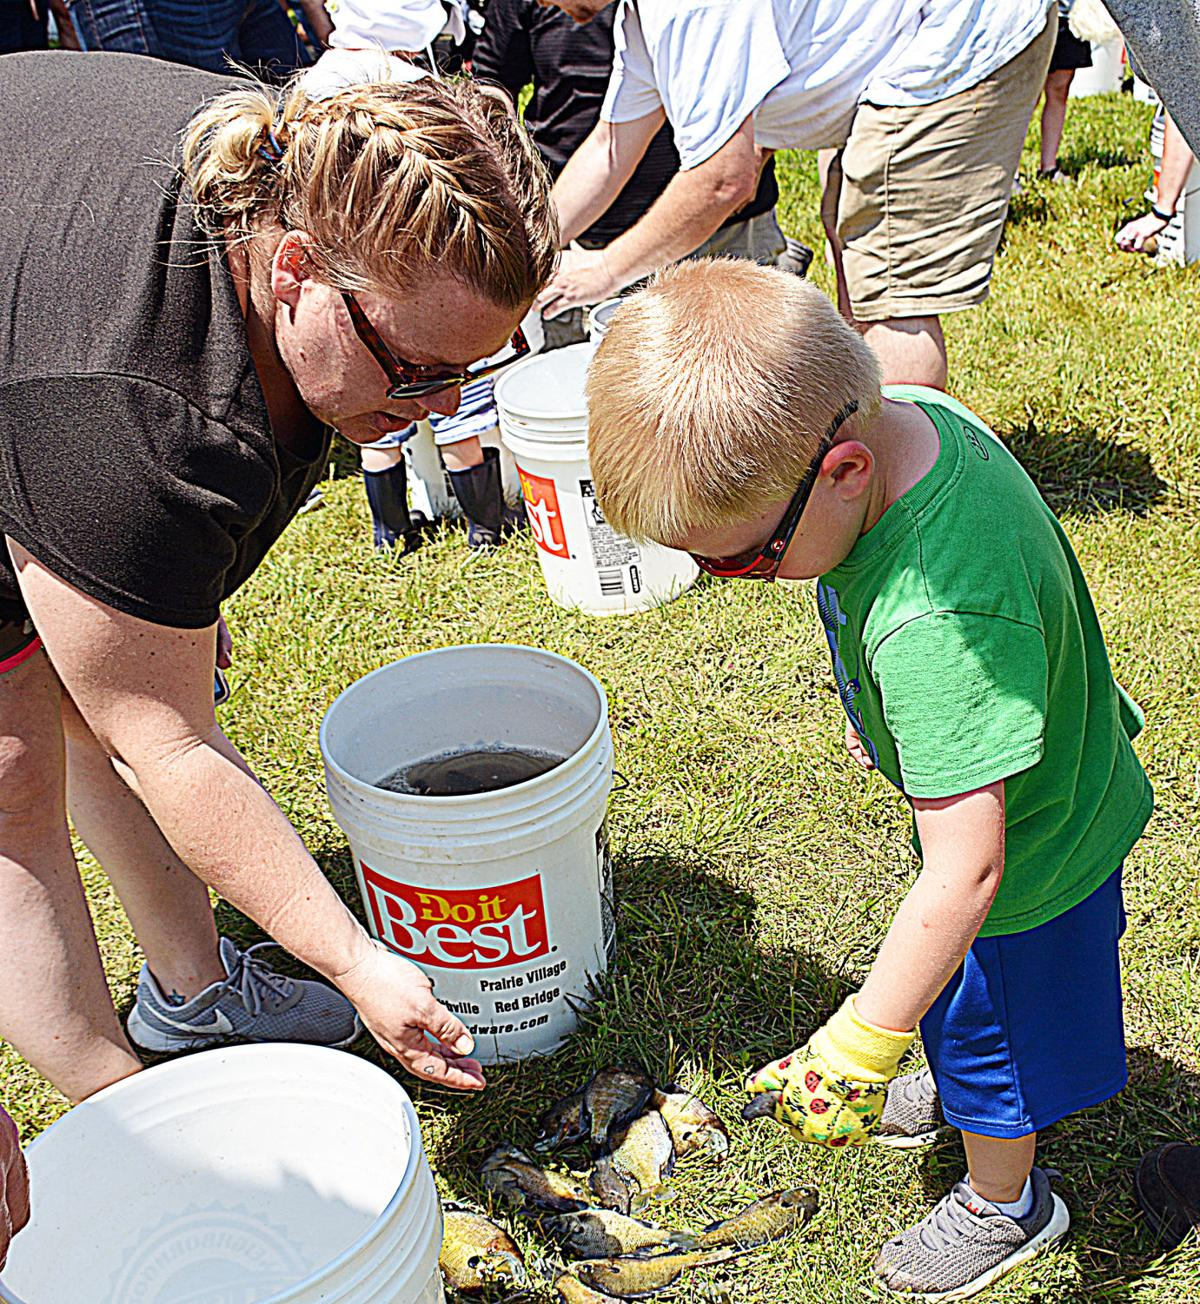 Fishing reels in trophies for Smithville youngsters